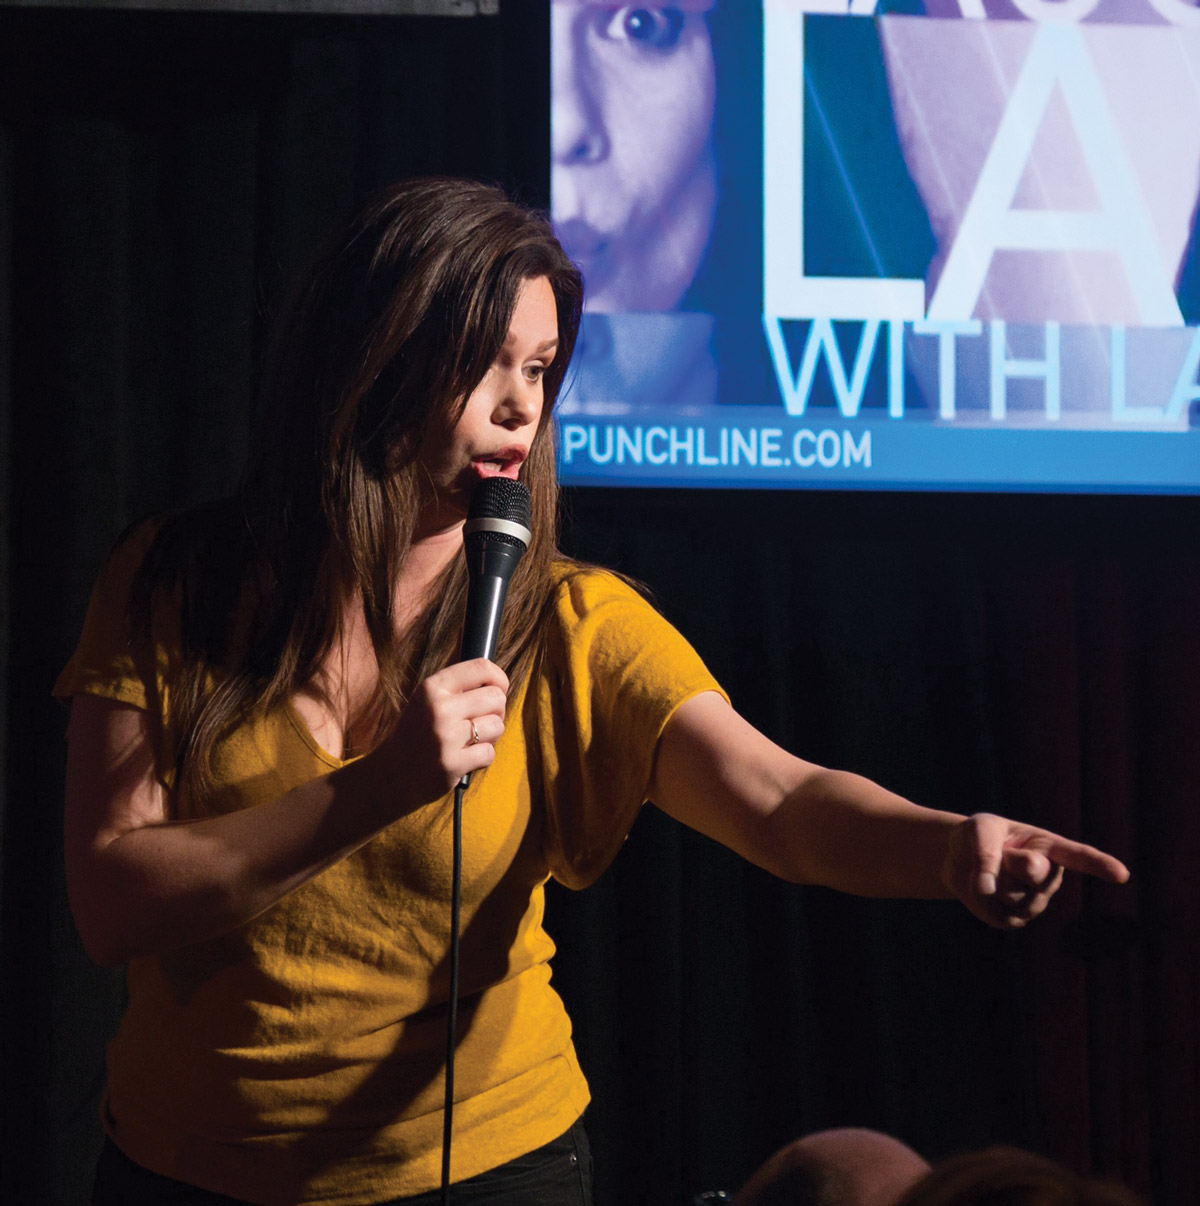 Lace Larrabee pointing at someone in a crowd during her standup performance